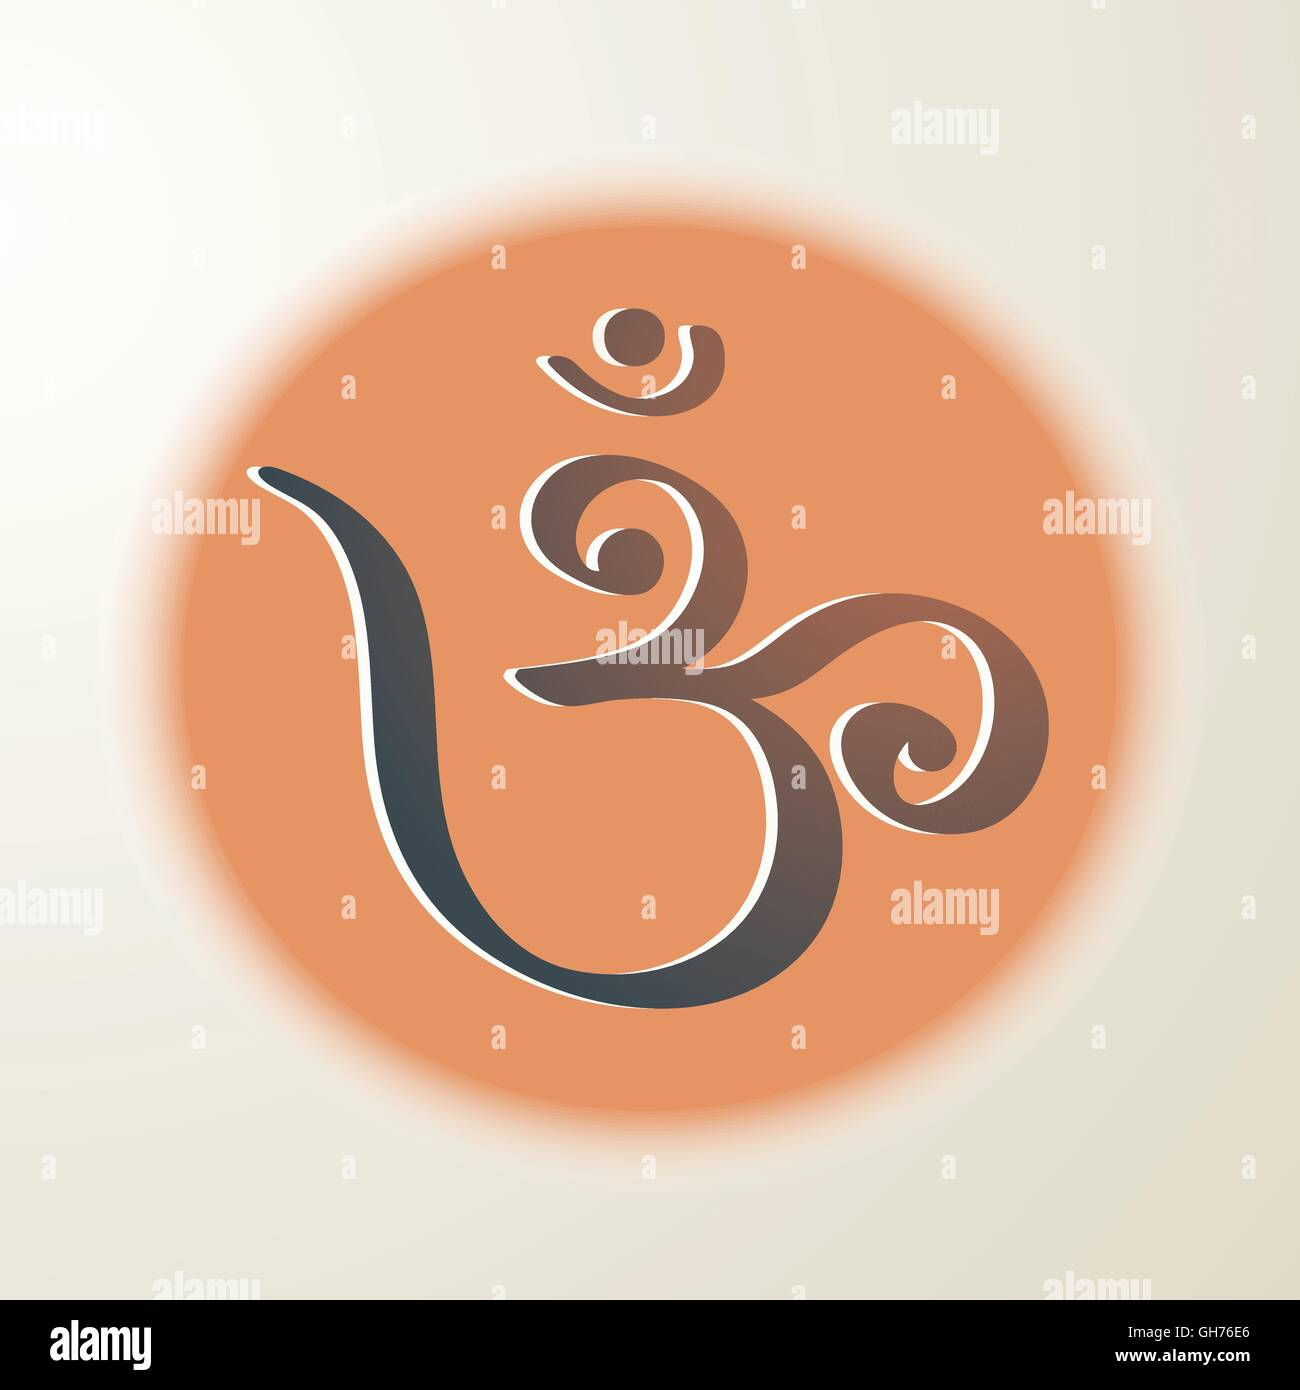 Om Hindu Symbol Stock Vector Art Illustration Vector Image